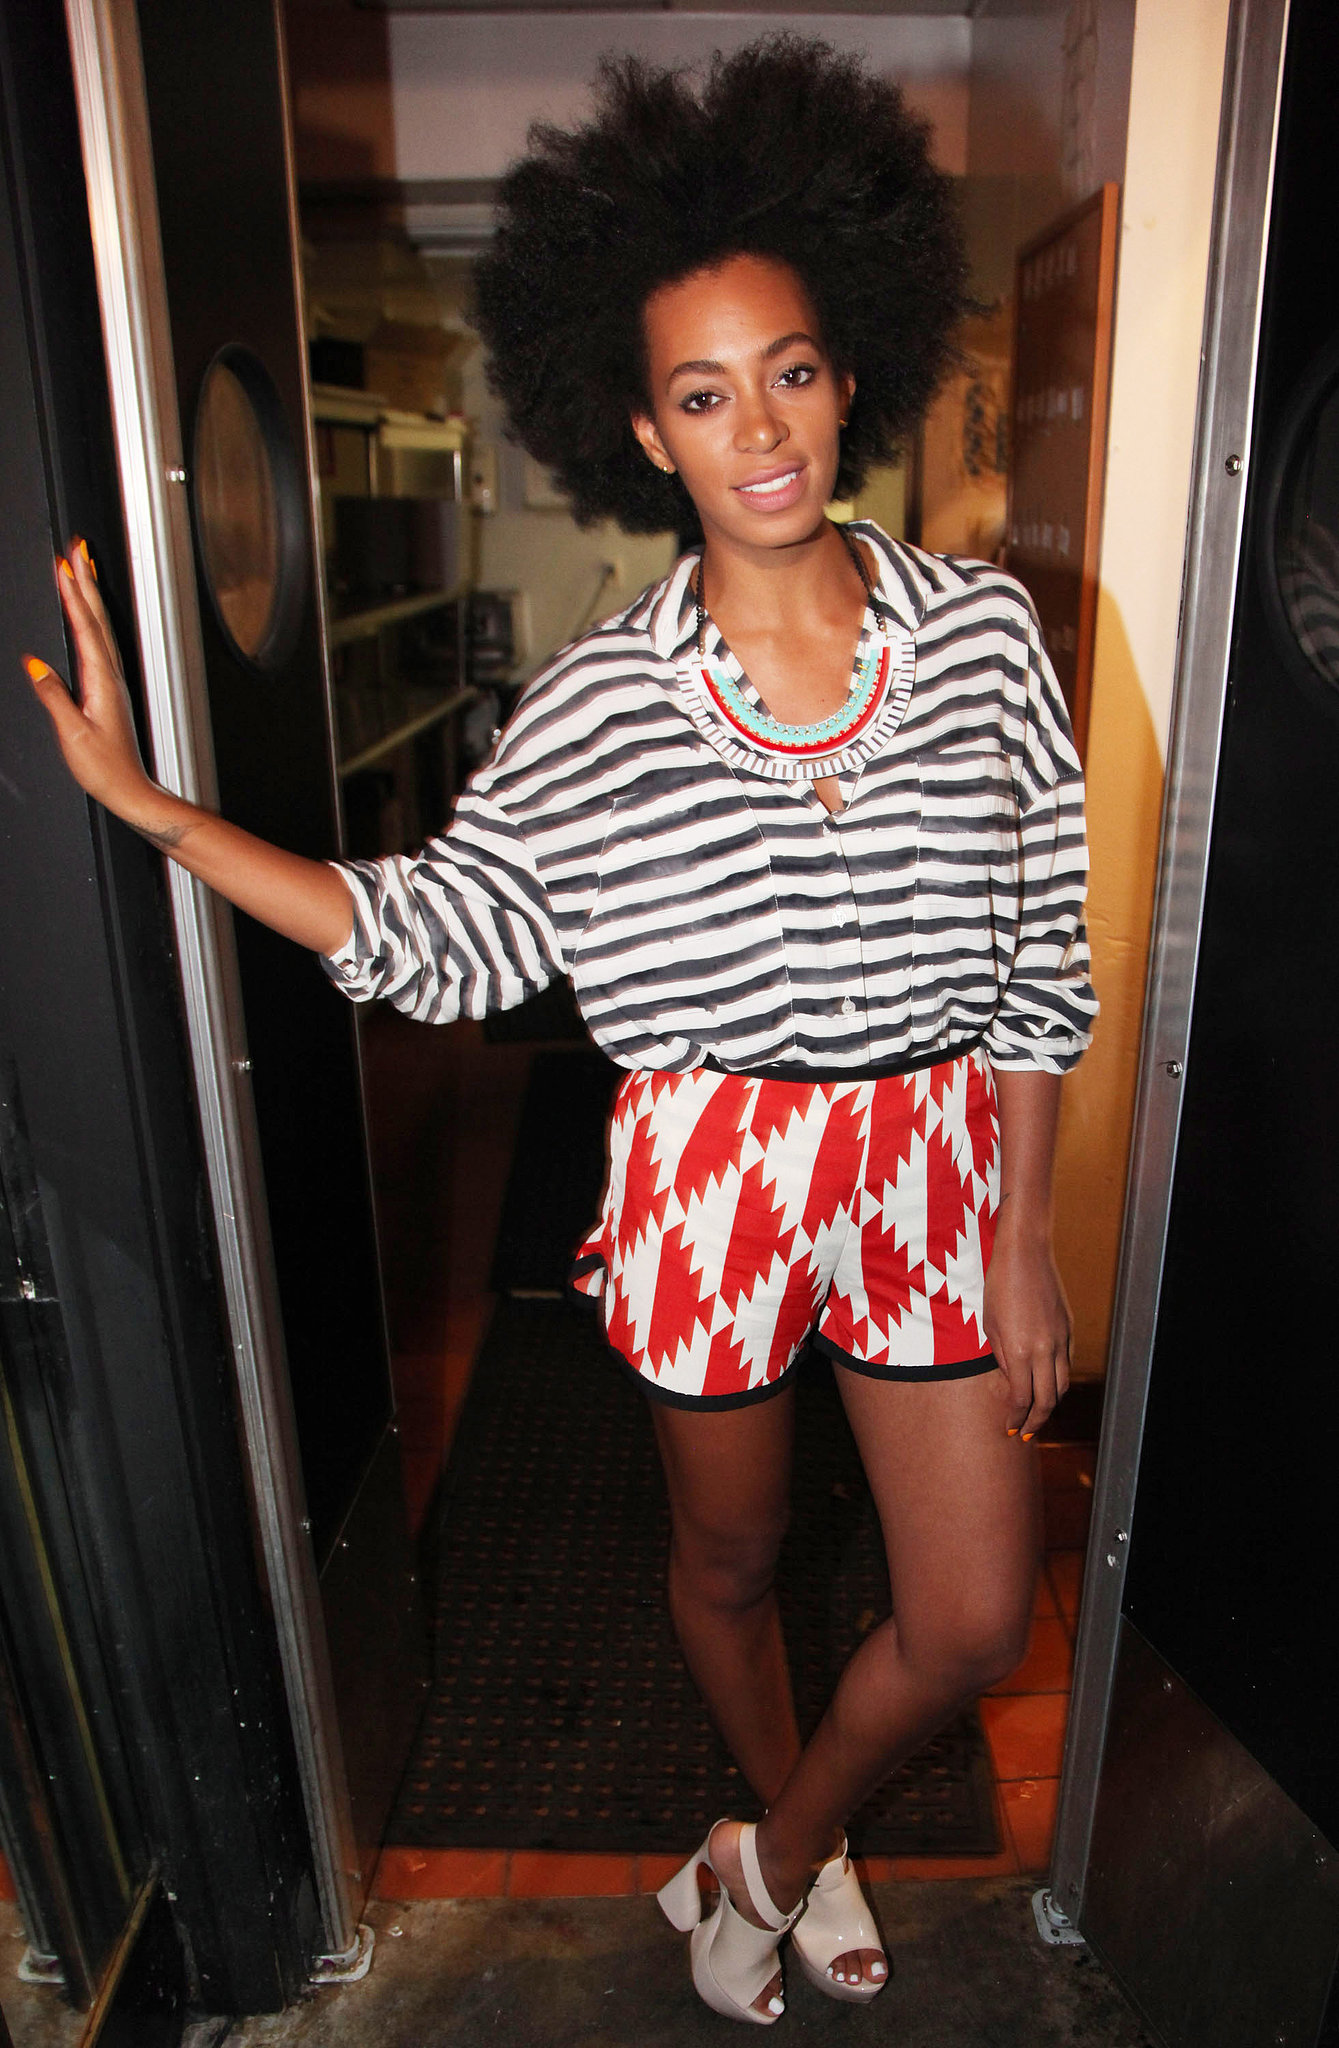 Knowles was perfectly mix-matched in a striped blouse, geometric-print shorts, white platforms, and a stunning bib necklace during a May 2011 trip to NYC.